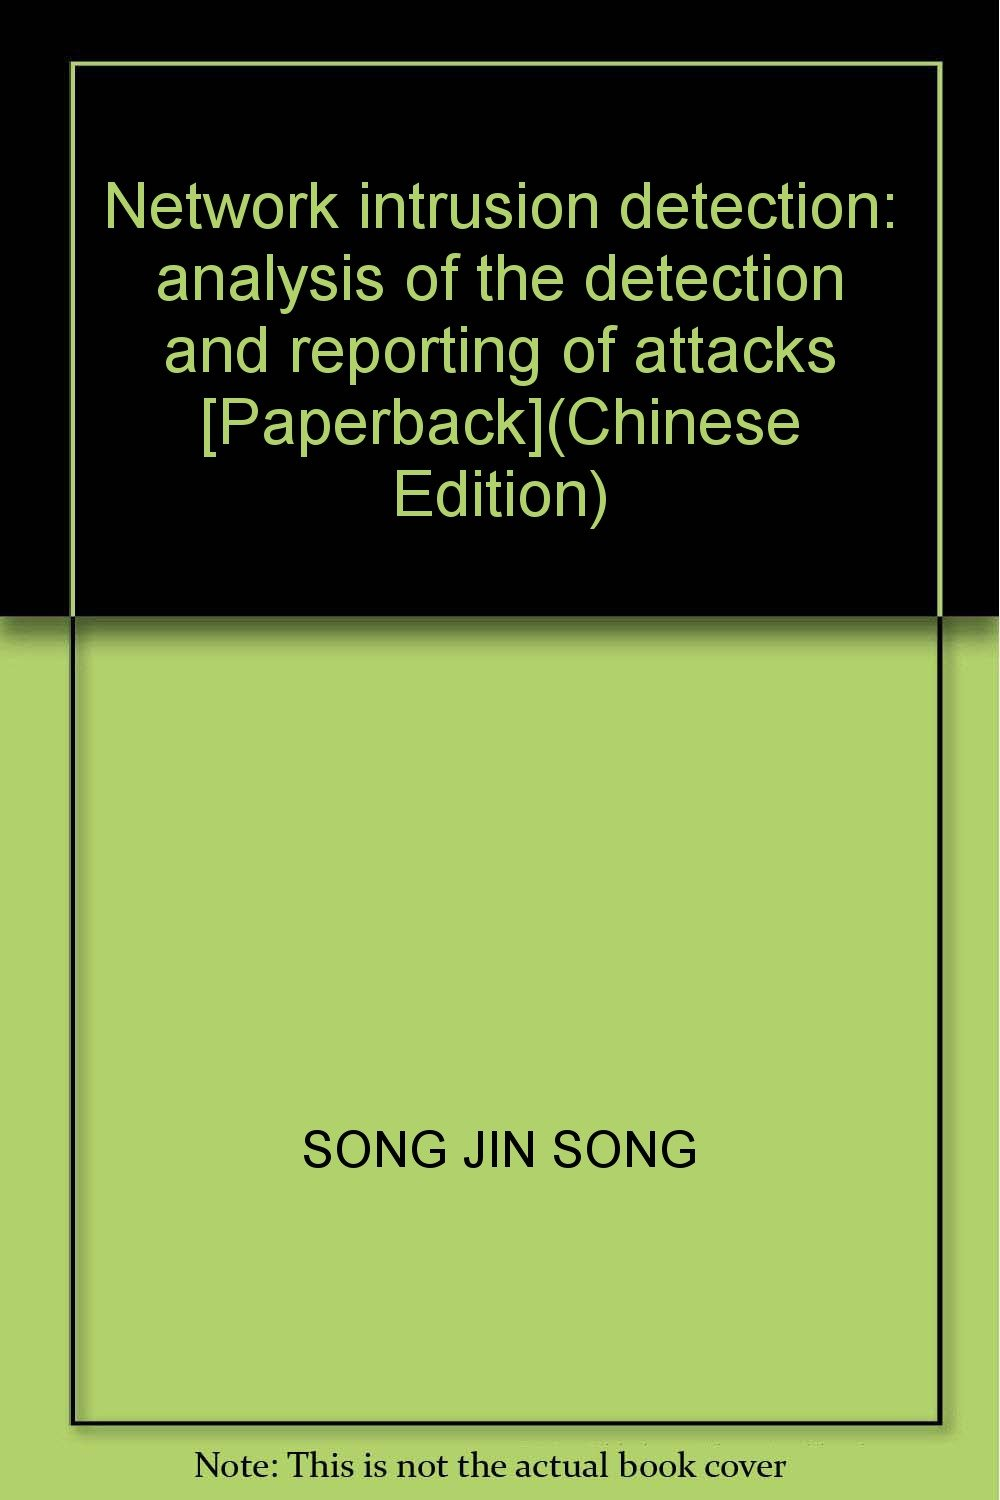 Download Network intrusion detection: analysis of the detection and reporting of attacks [Paperback](Chinese Edition) ebook